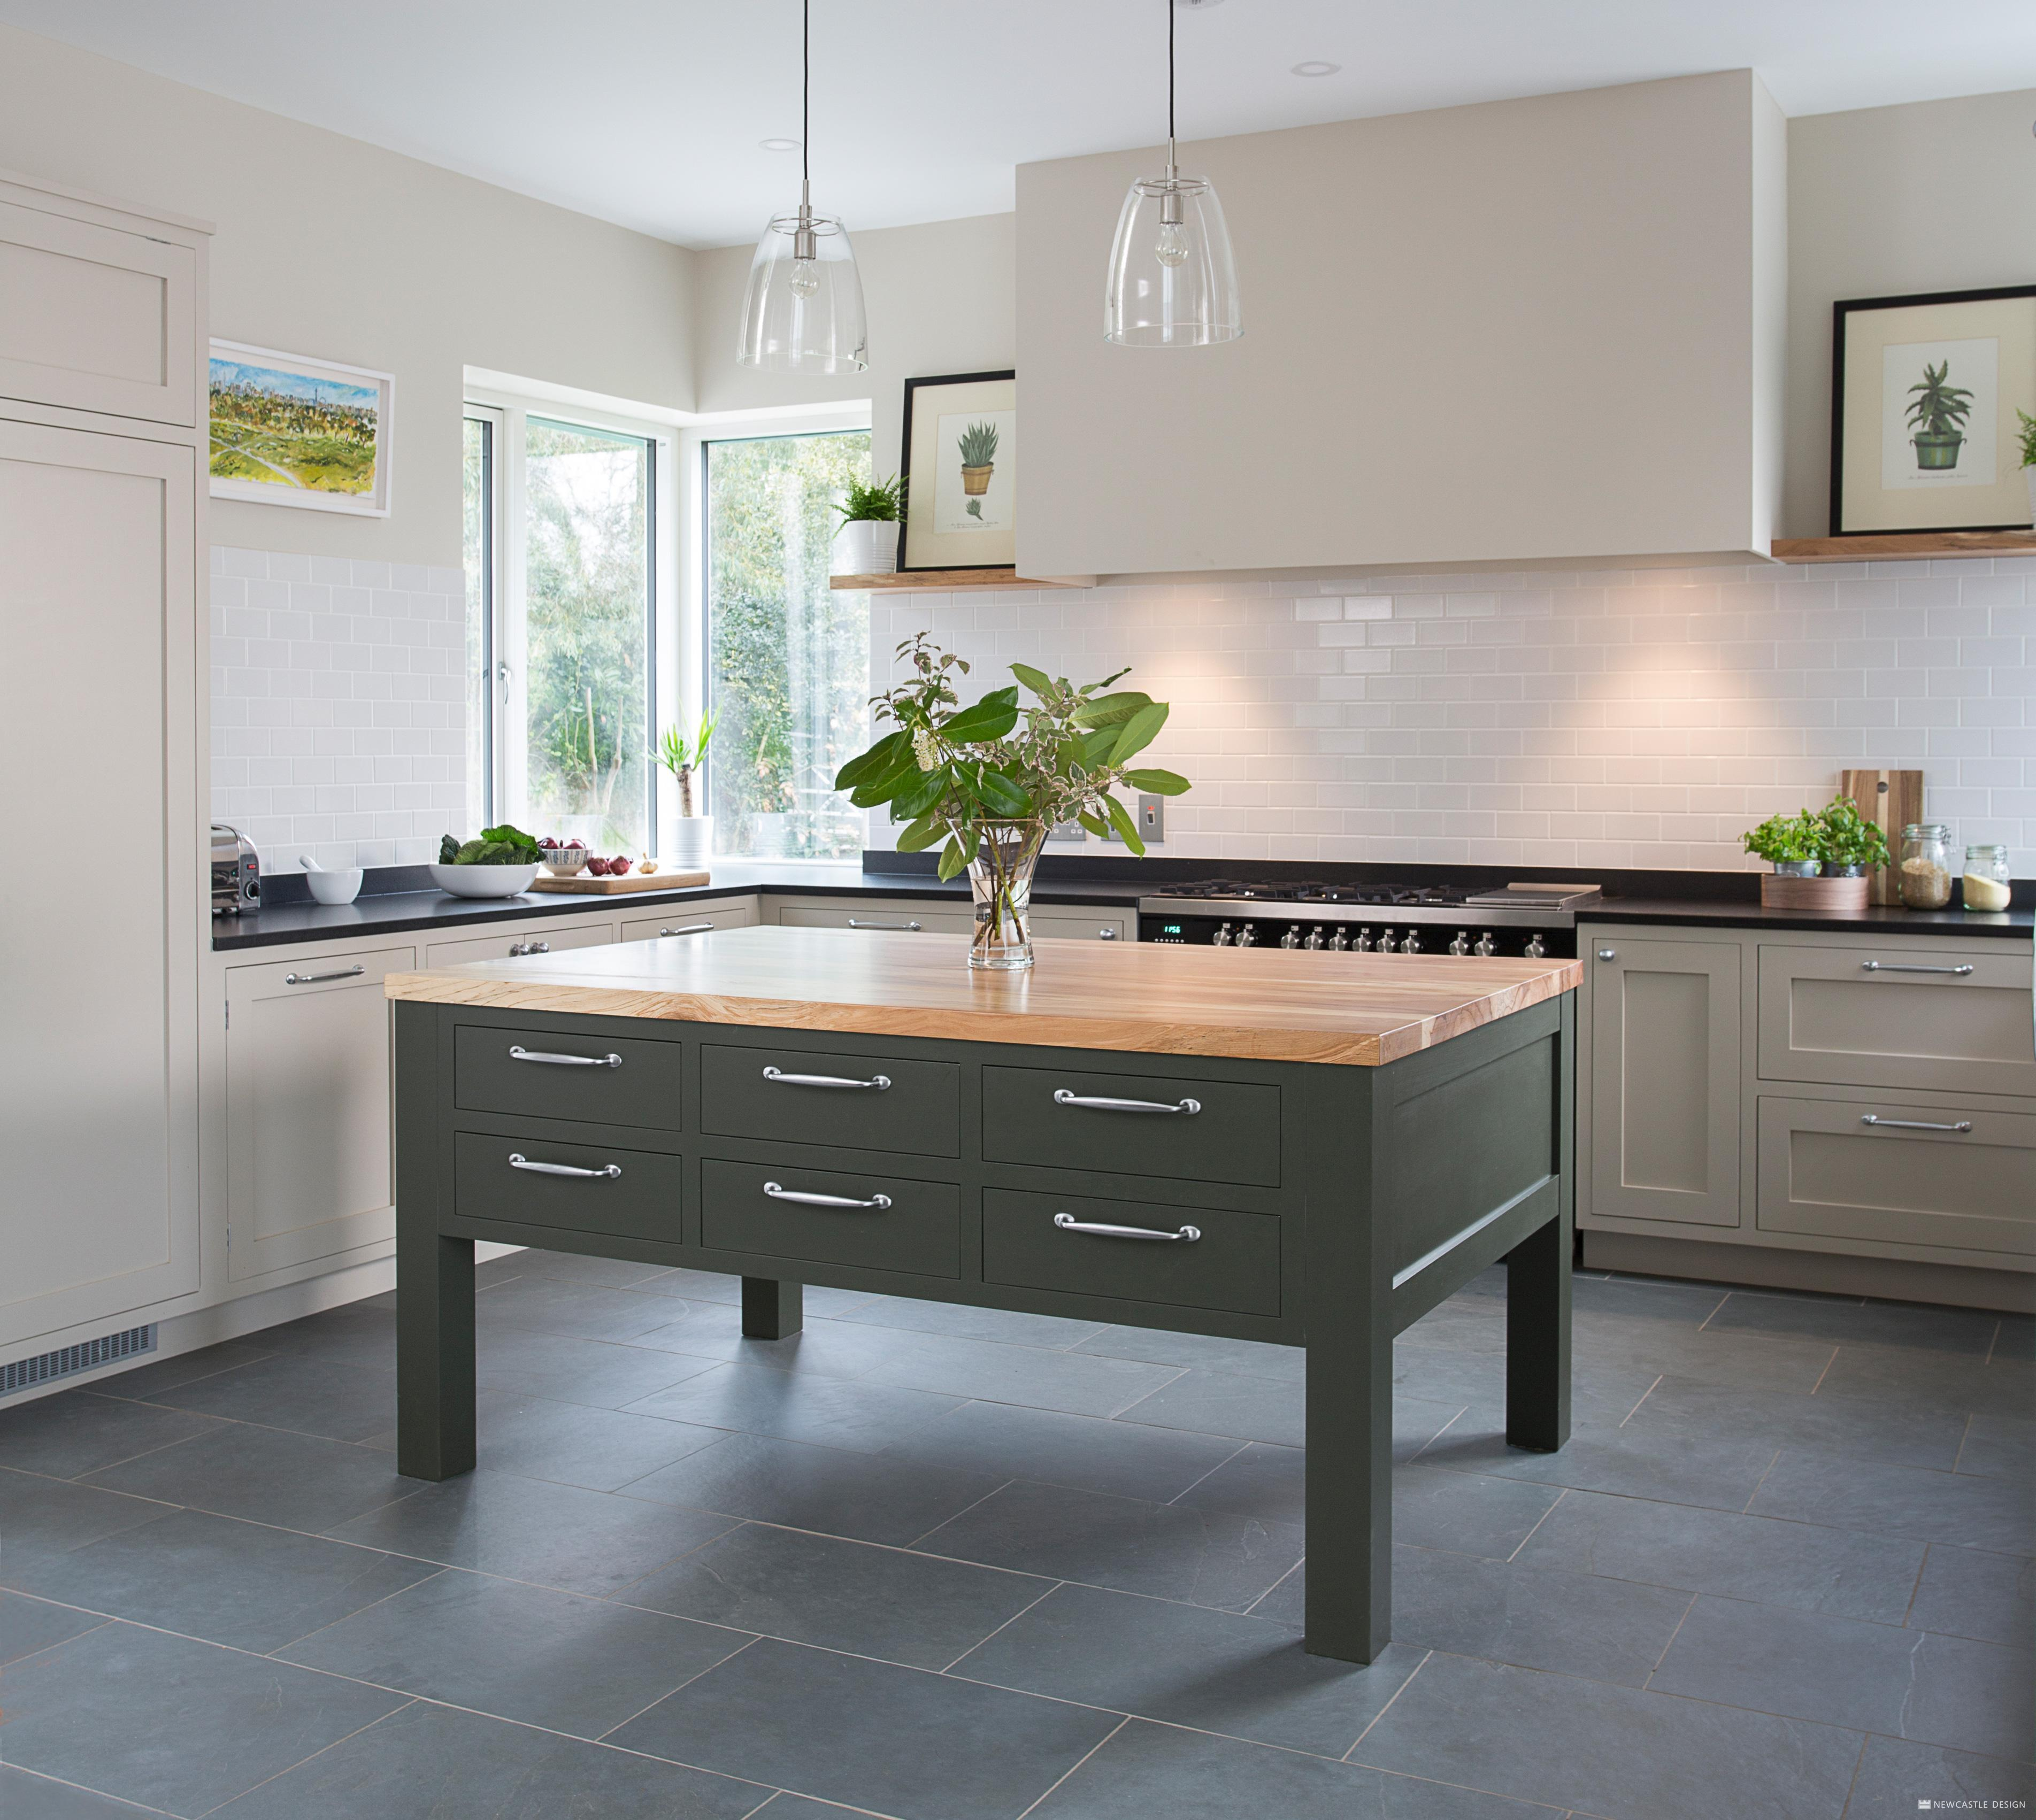 The Spalted Beech Kitchen